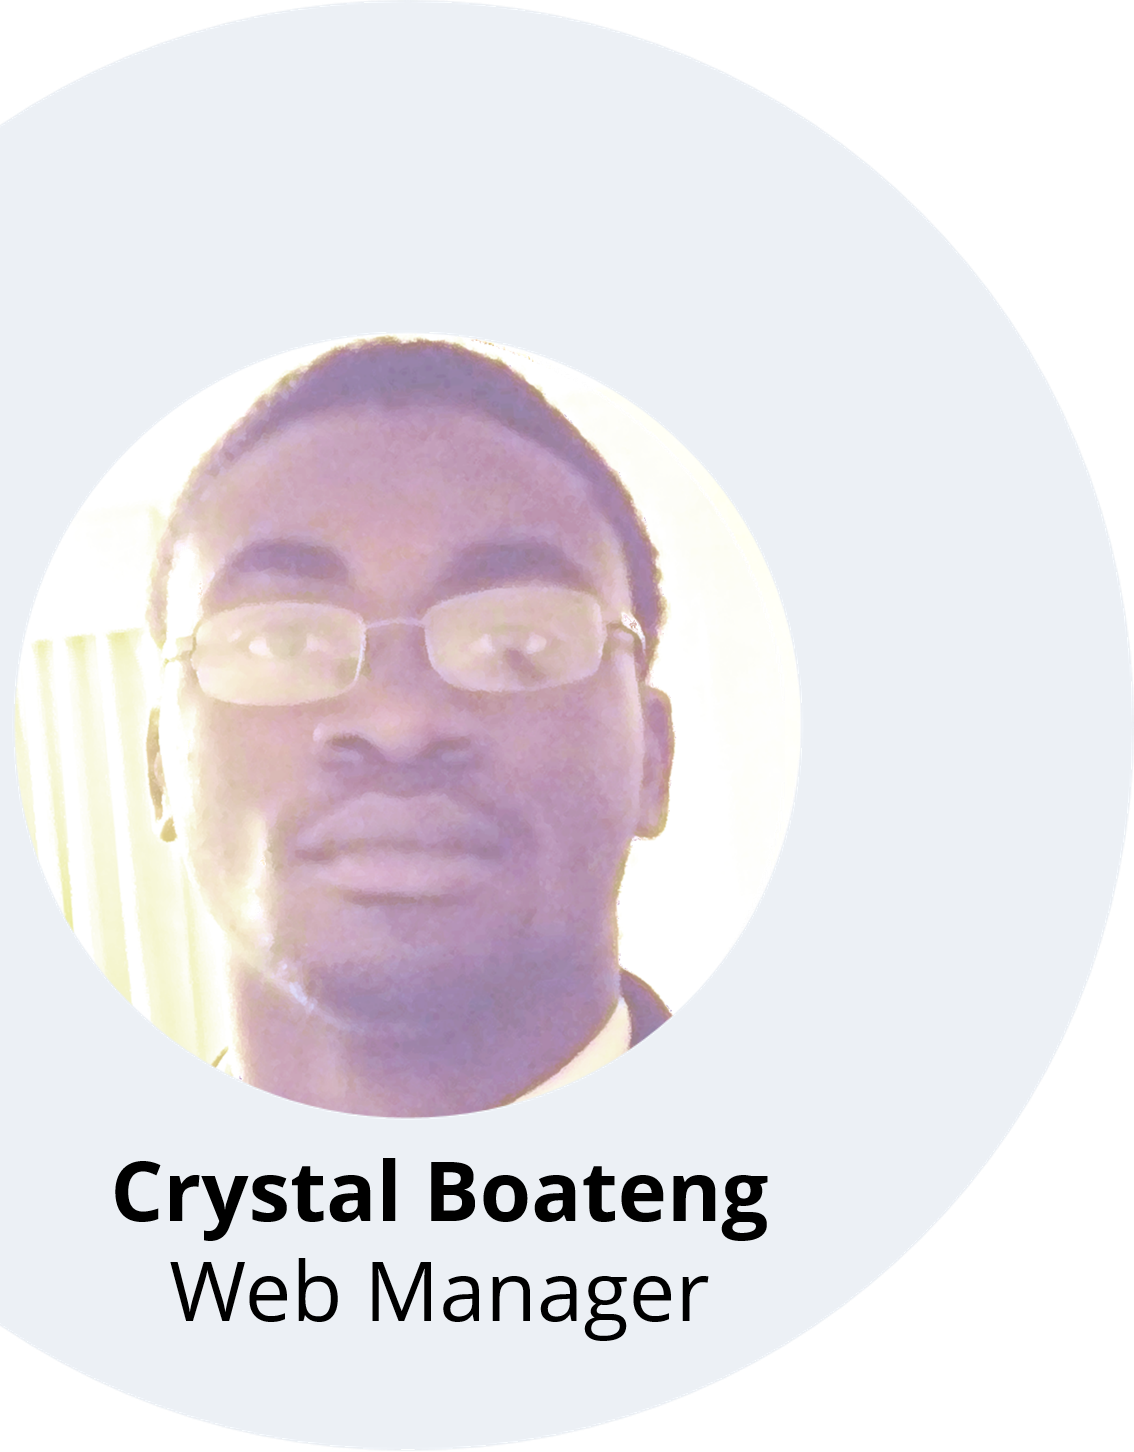 Crystal Boateng